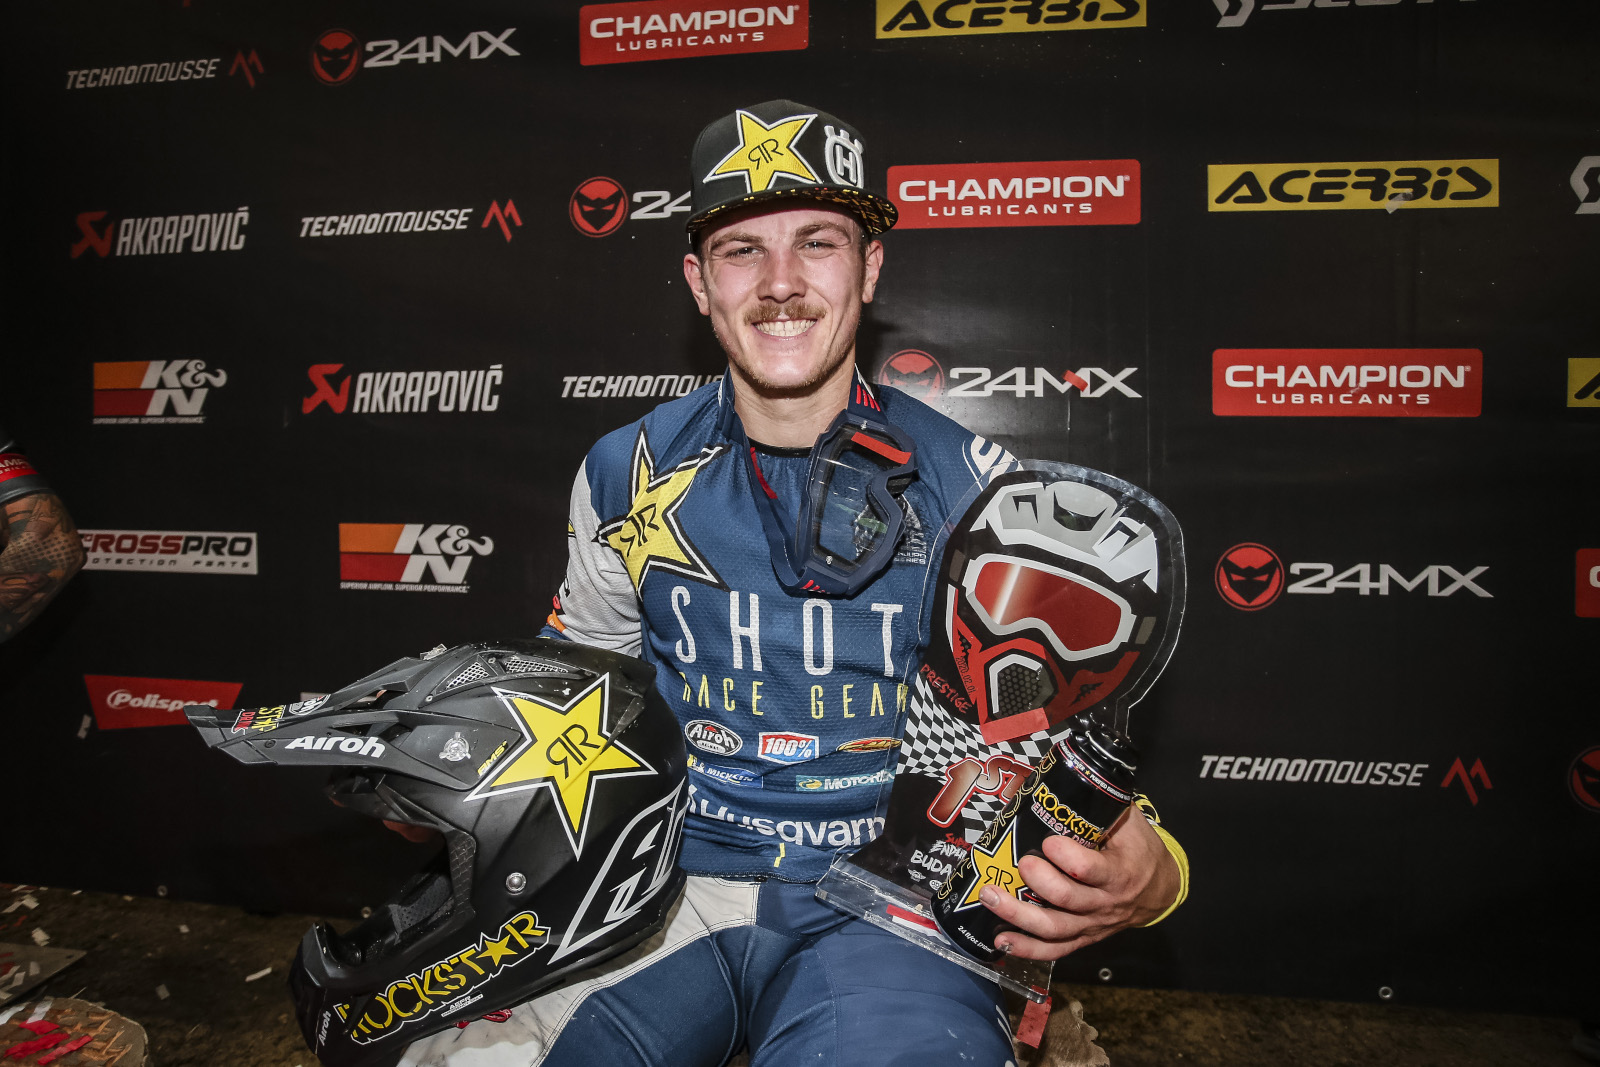 Billy Bolt declared 2020 FIM SuperEnduro World Champion